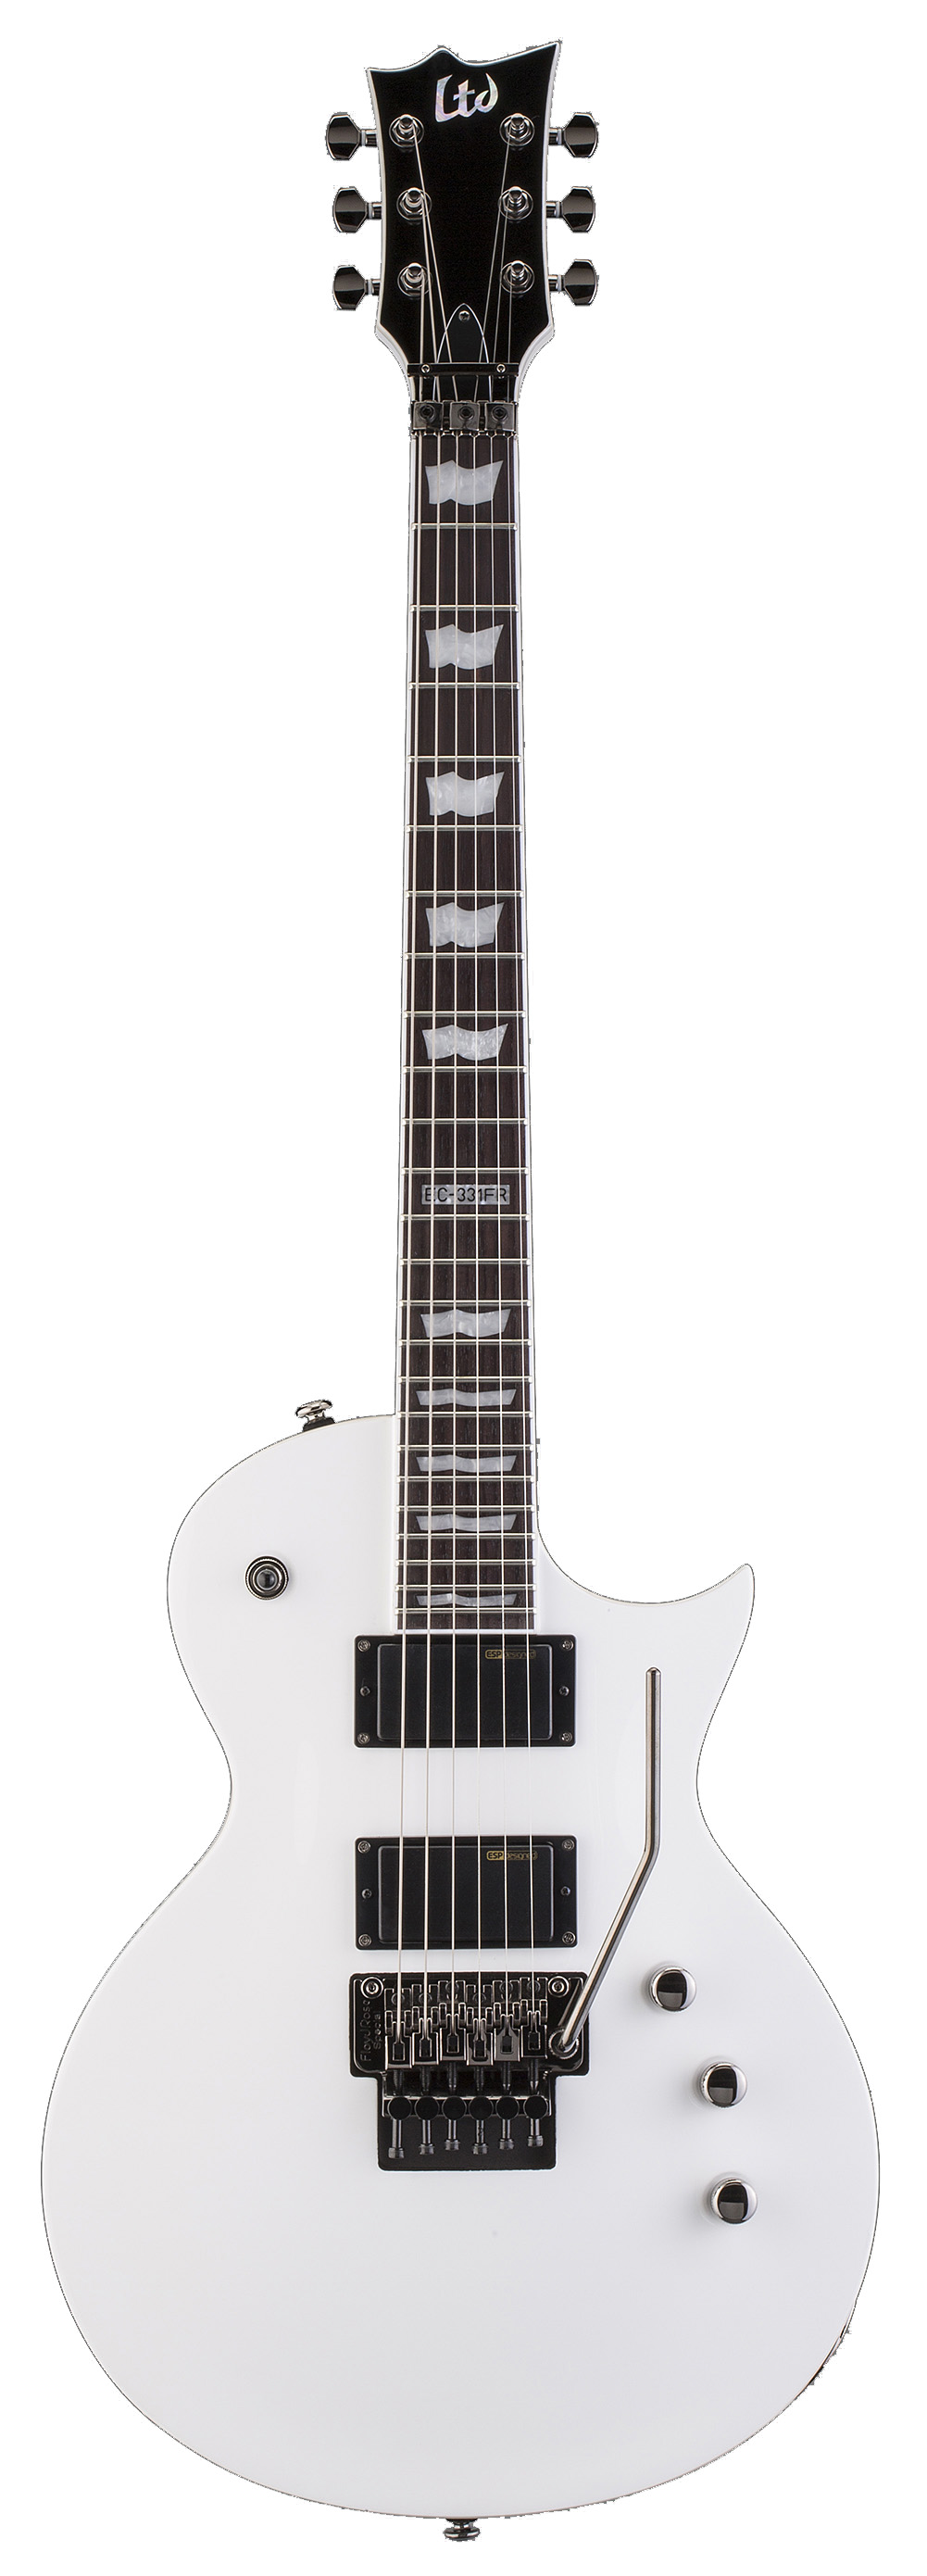 ESP LTD EC-331FR SW EC Series Electric Guitar with Rosewood Fingerboard and Snow White Gloss Finish